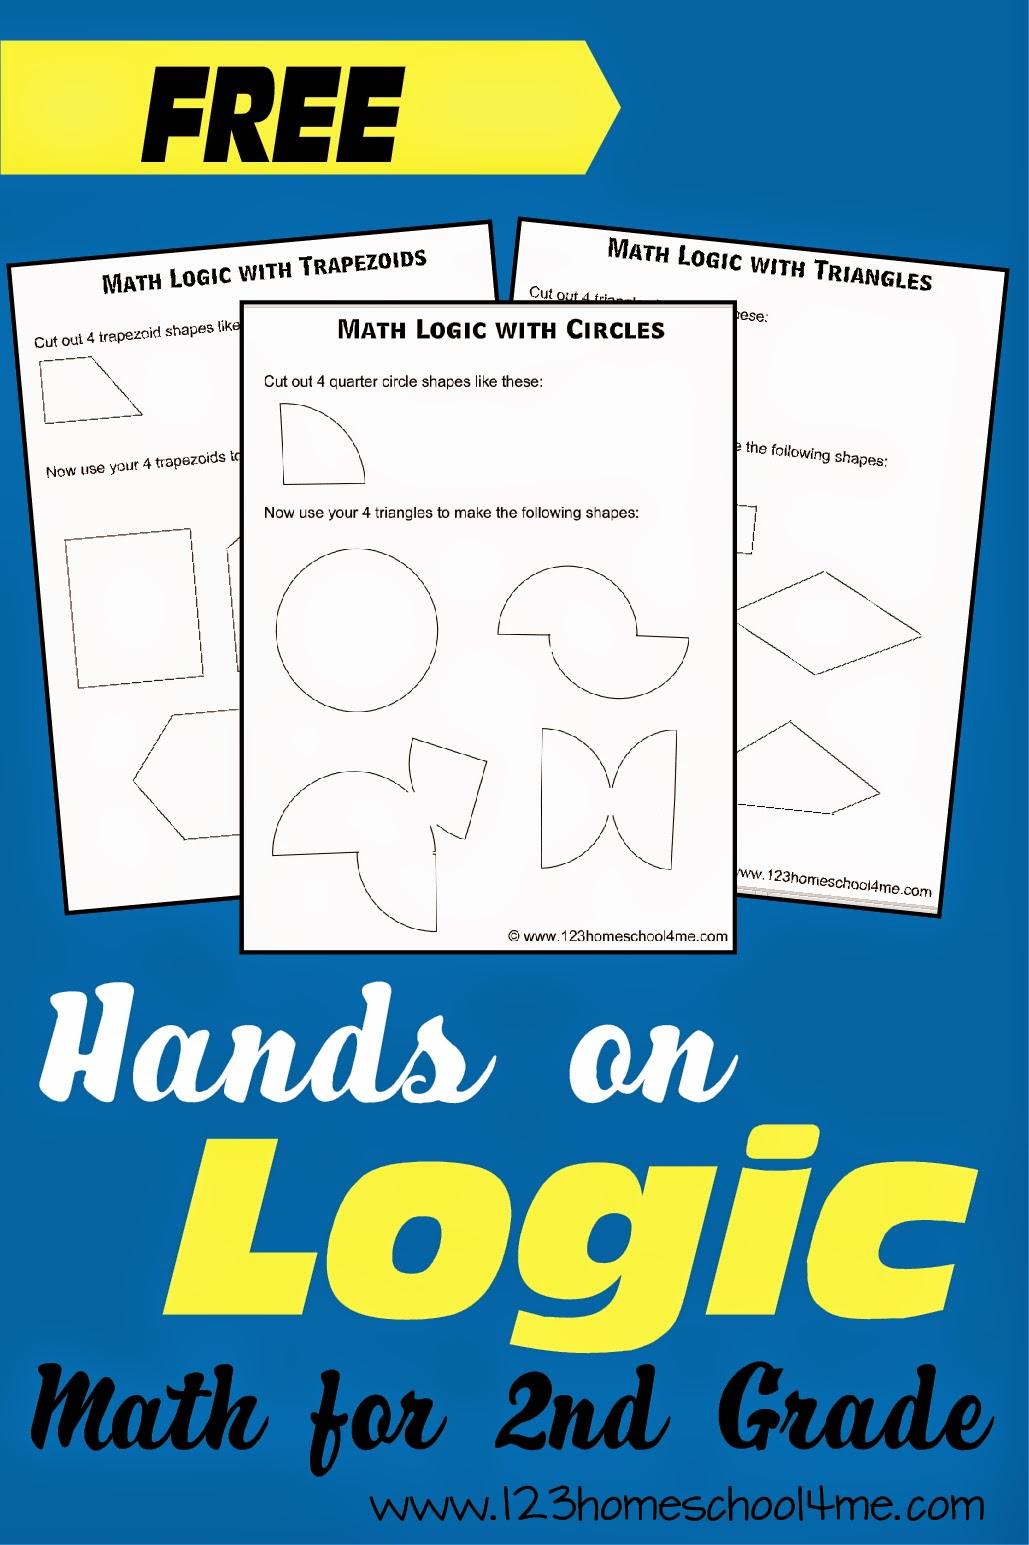 Shape Logic Problems for 2nd Grade Math